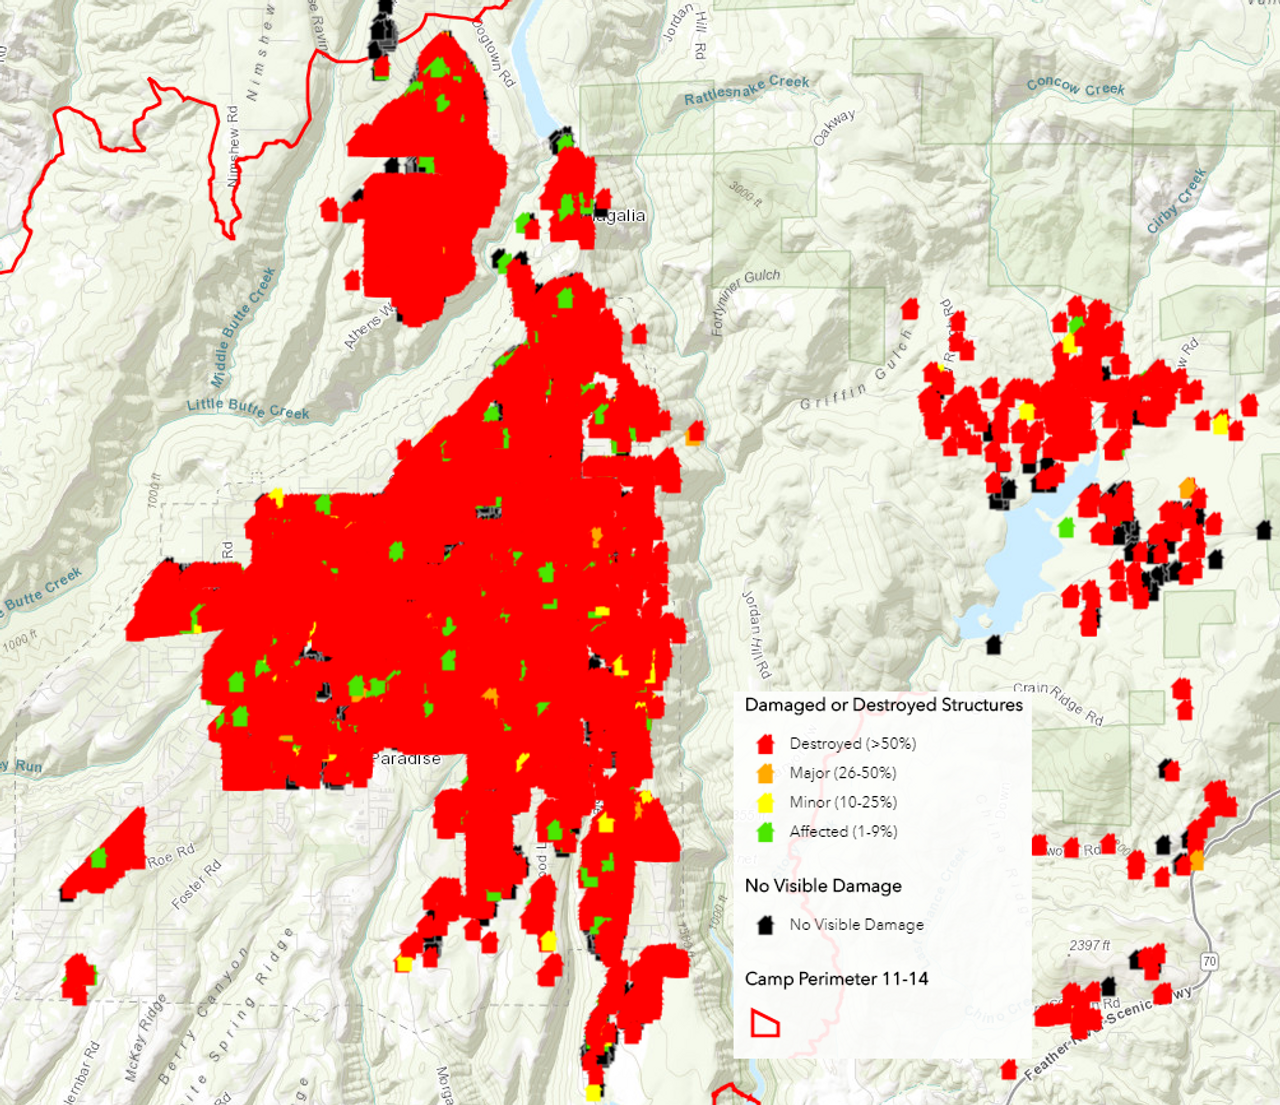 A map of the building damage in Paradise, CA and surrounding areas